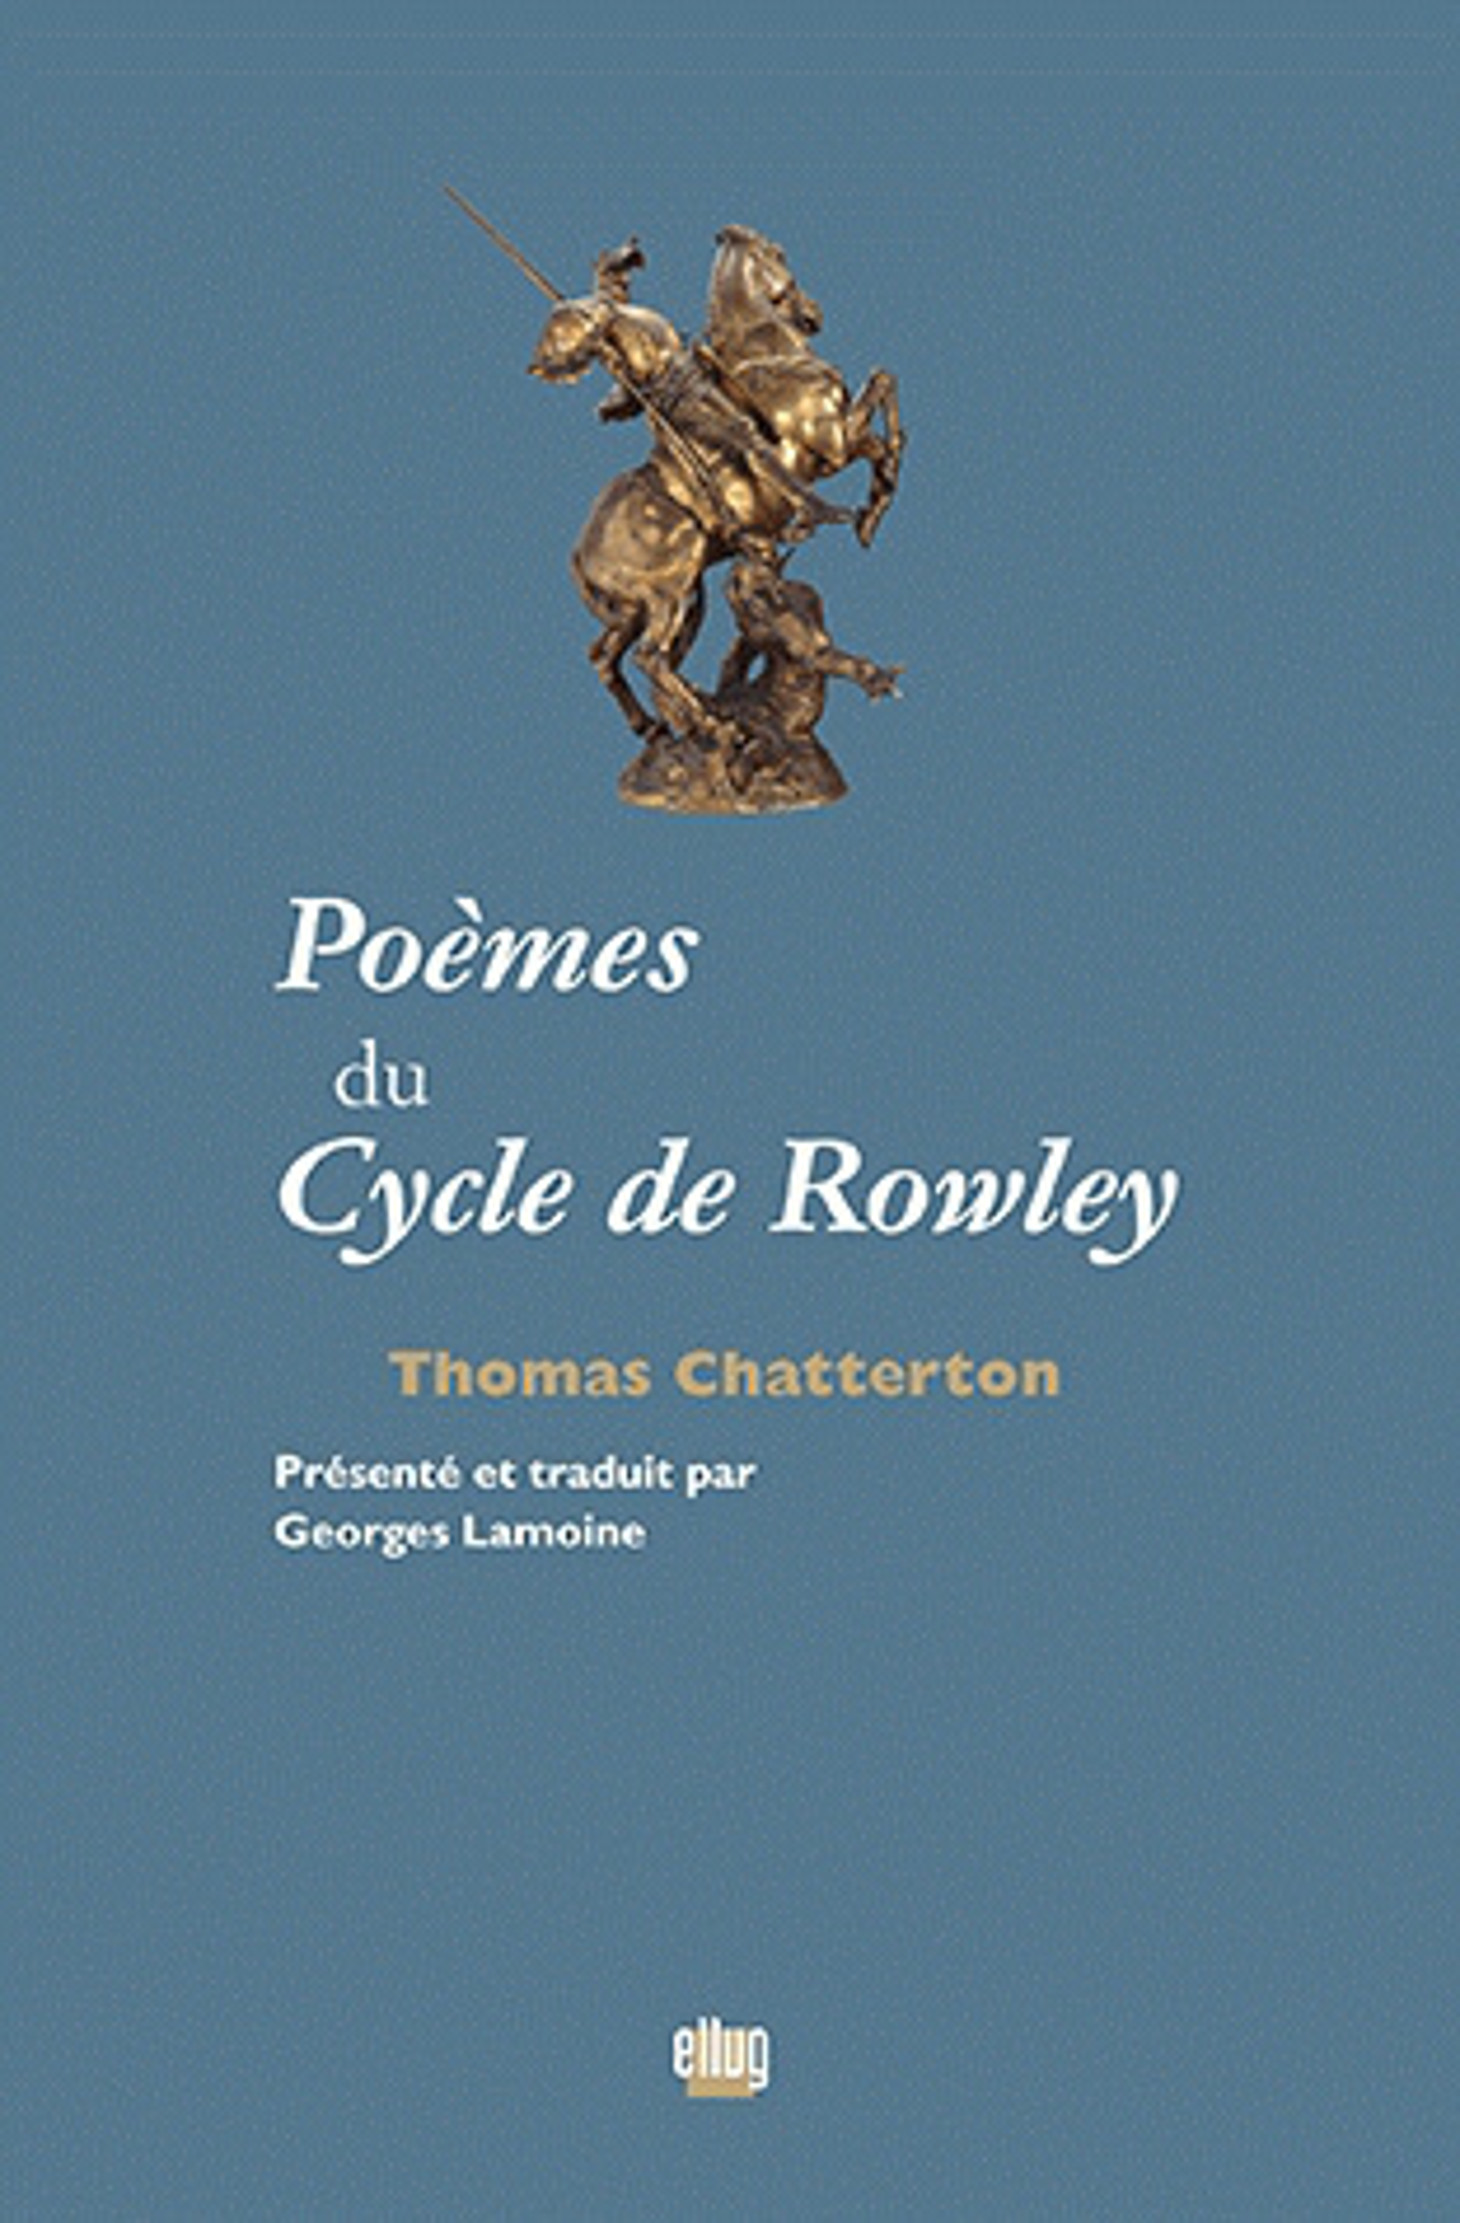 Couverture Cycle de Rowley de Chatterton